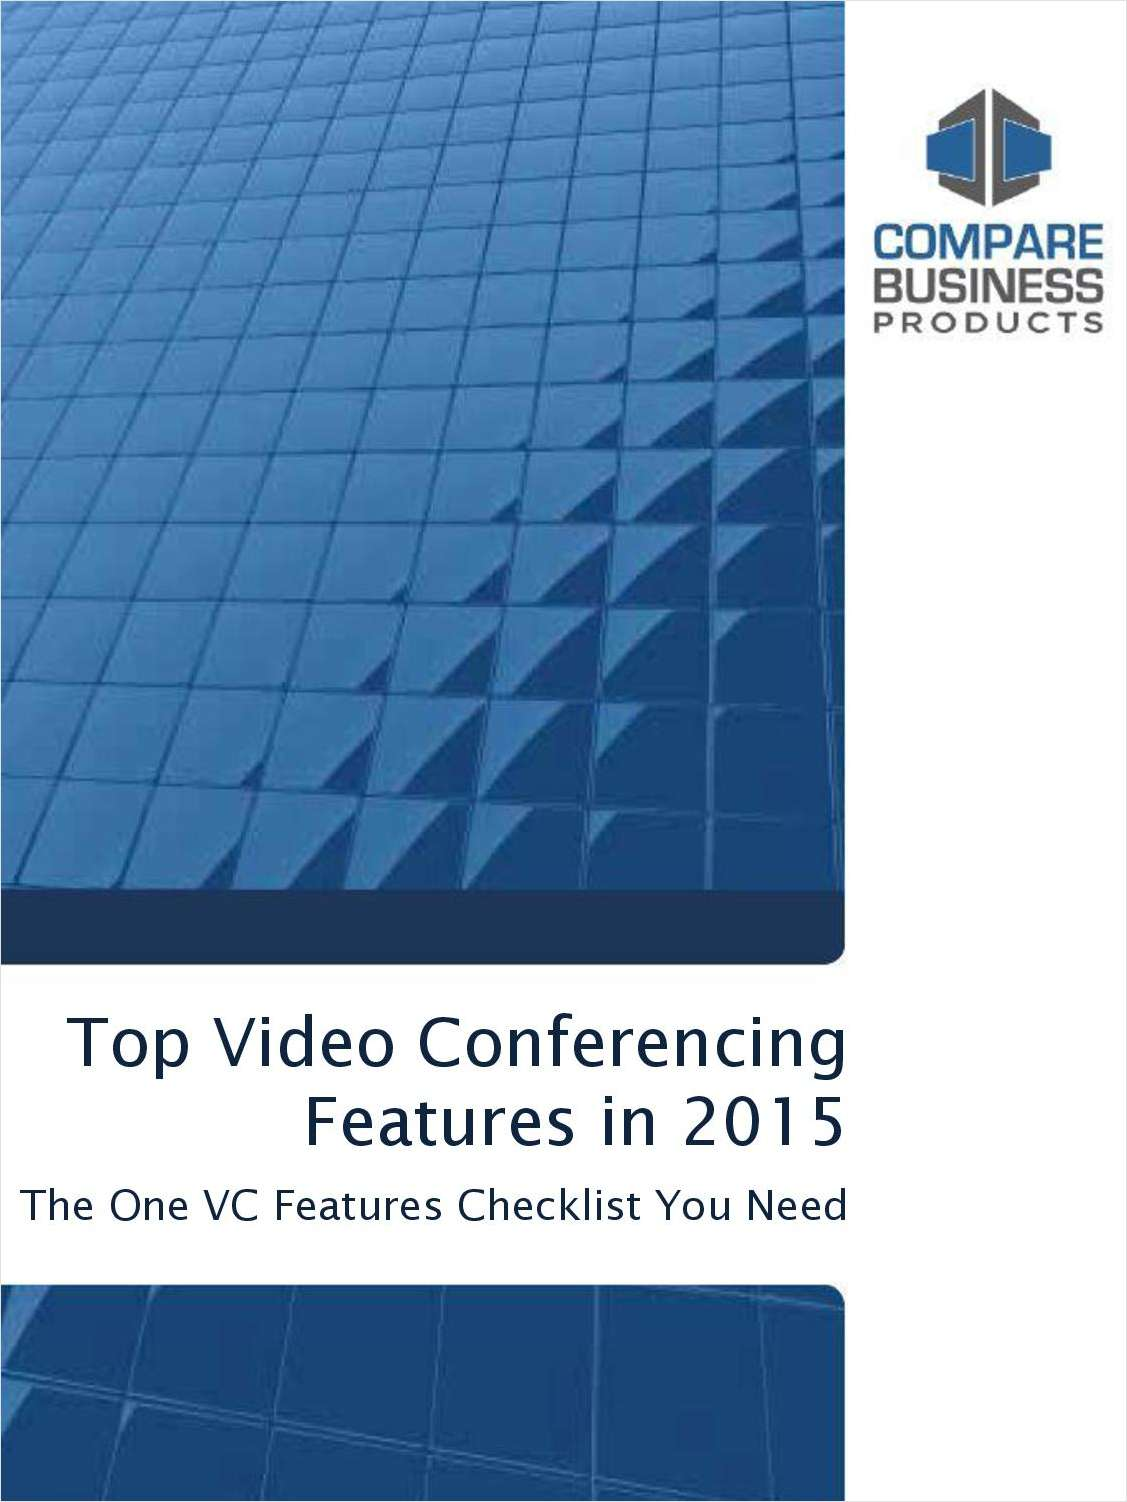 Top Video Conferencing Features in 2015